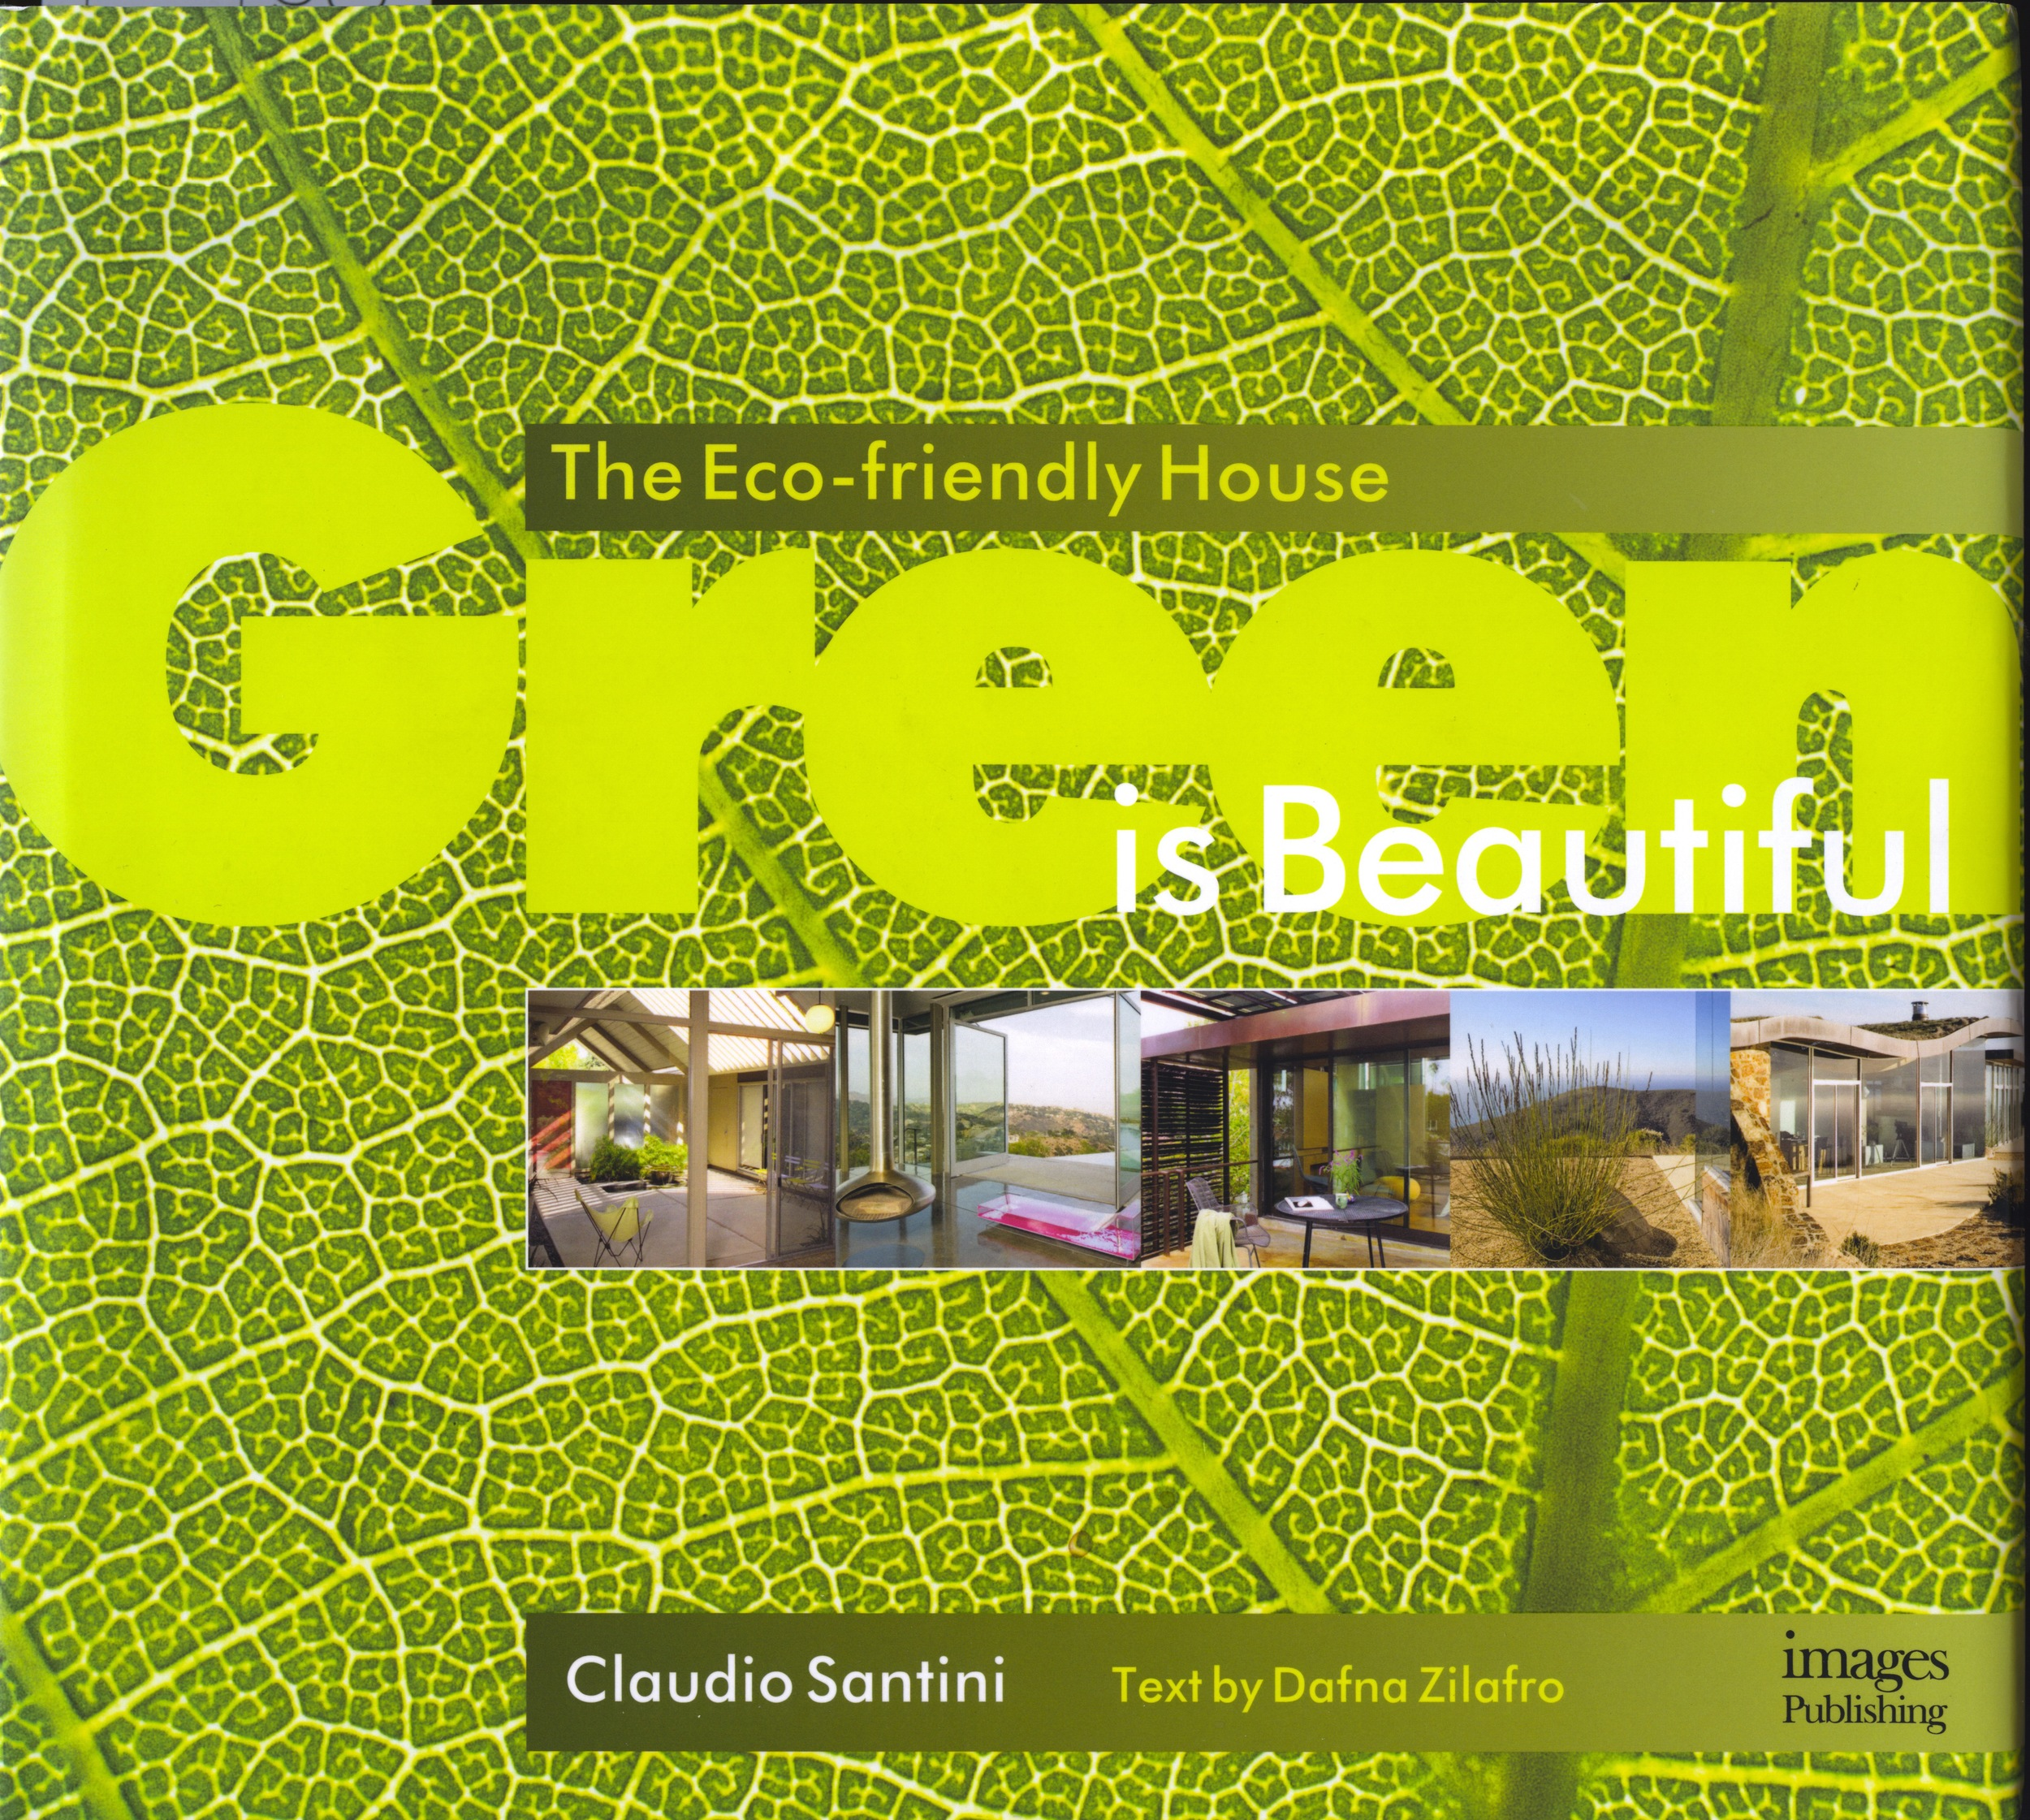 green is beautiful2 copy.jpg